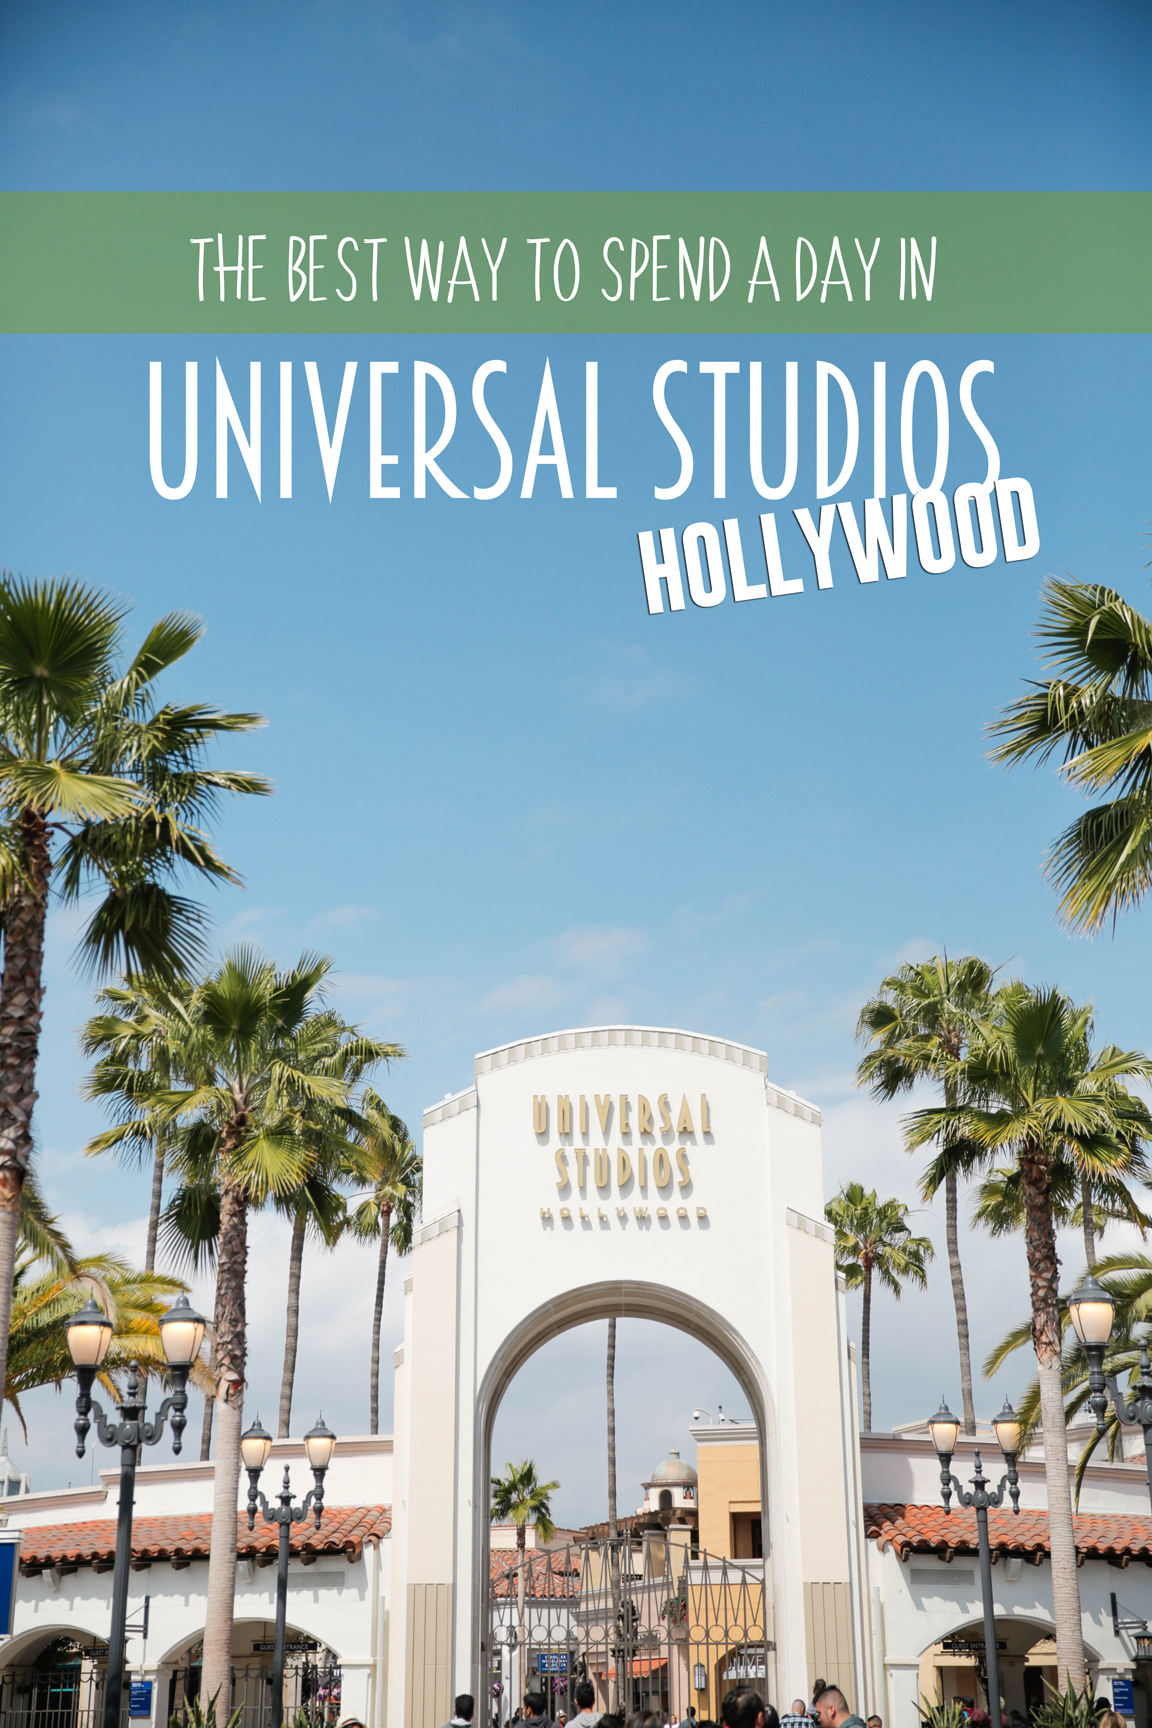 The best way to spend a day at Universal Studios Hollywood